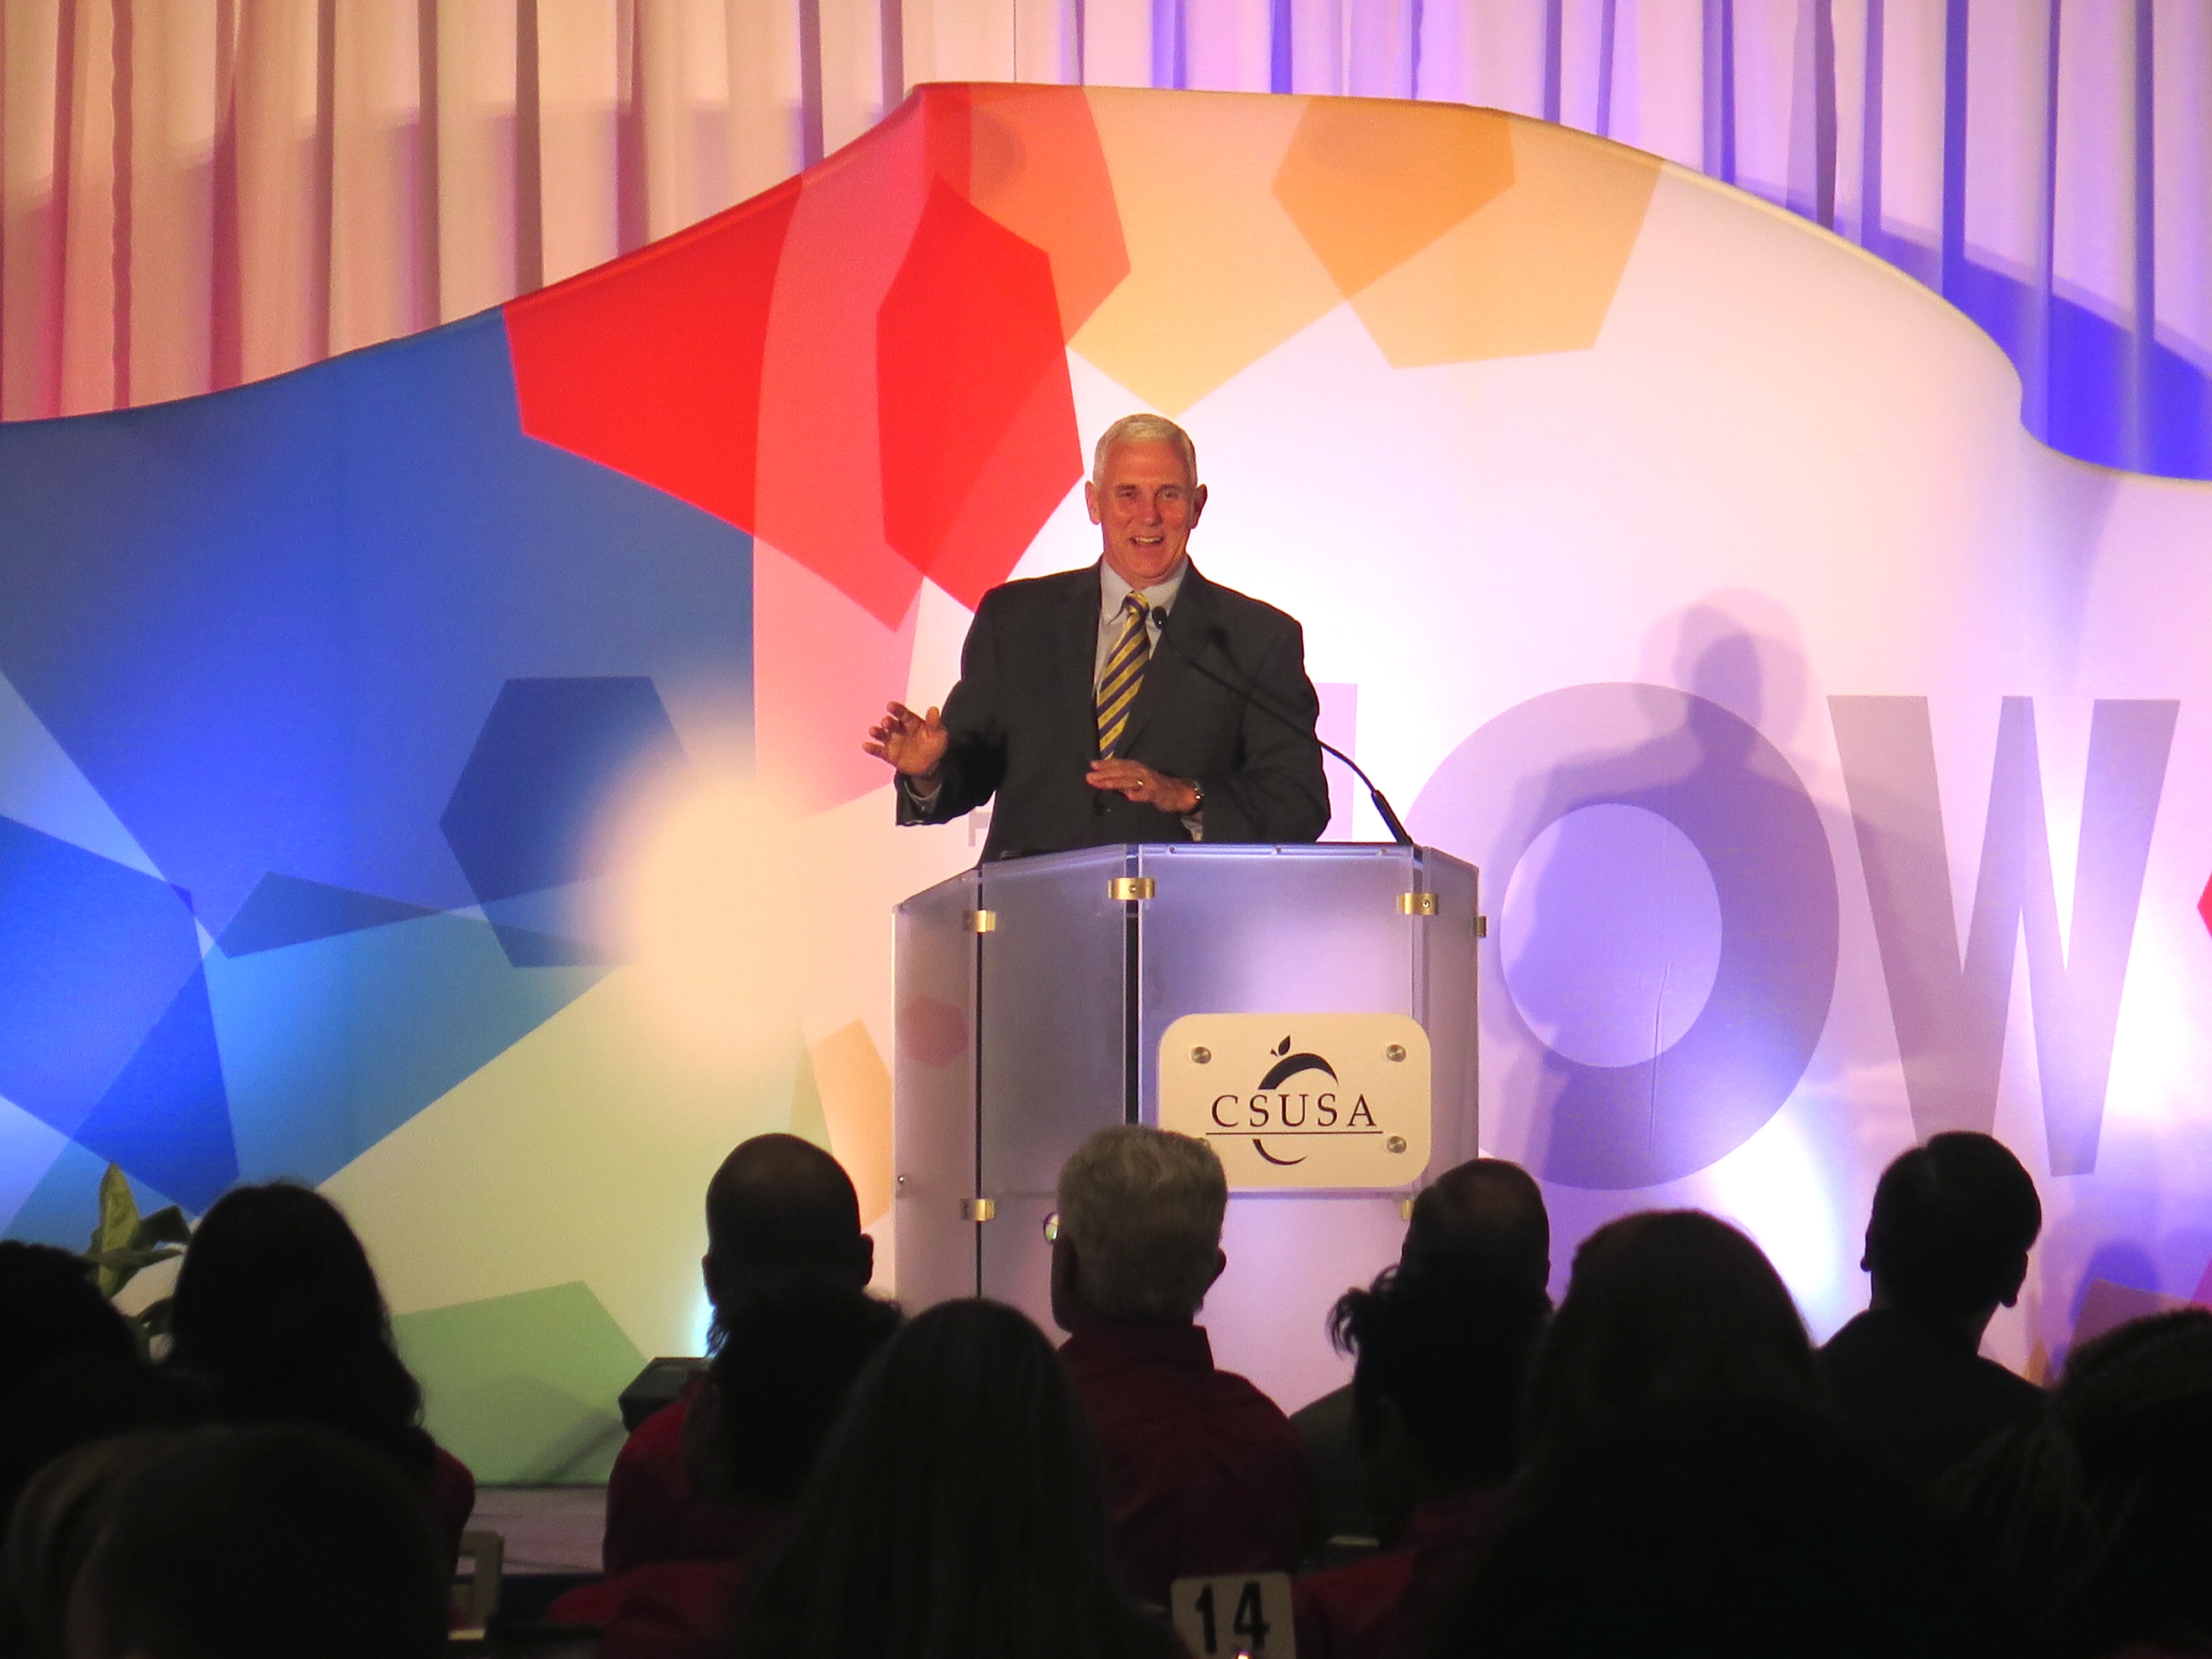 Gov. Mike Pence addresses a crowd of teachers and leaders from Howe and Manual high schools and Donnan, which is now a K-8 school, during Charter Schools USA's annual summit at the Westin Hotel downtown.